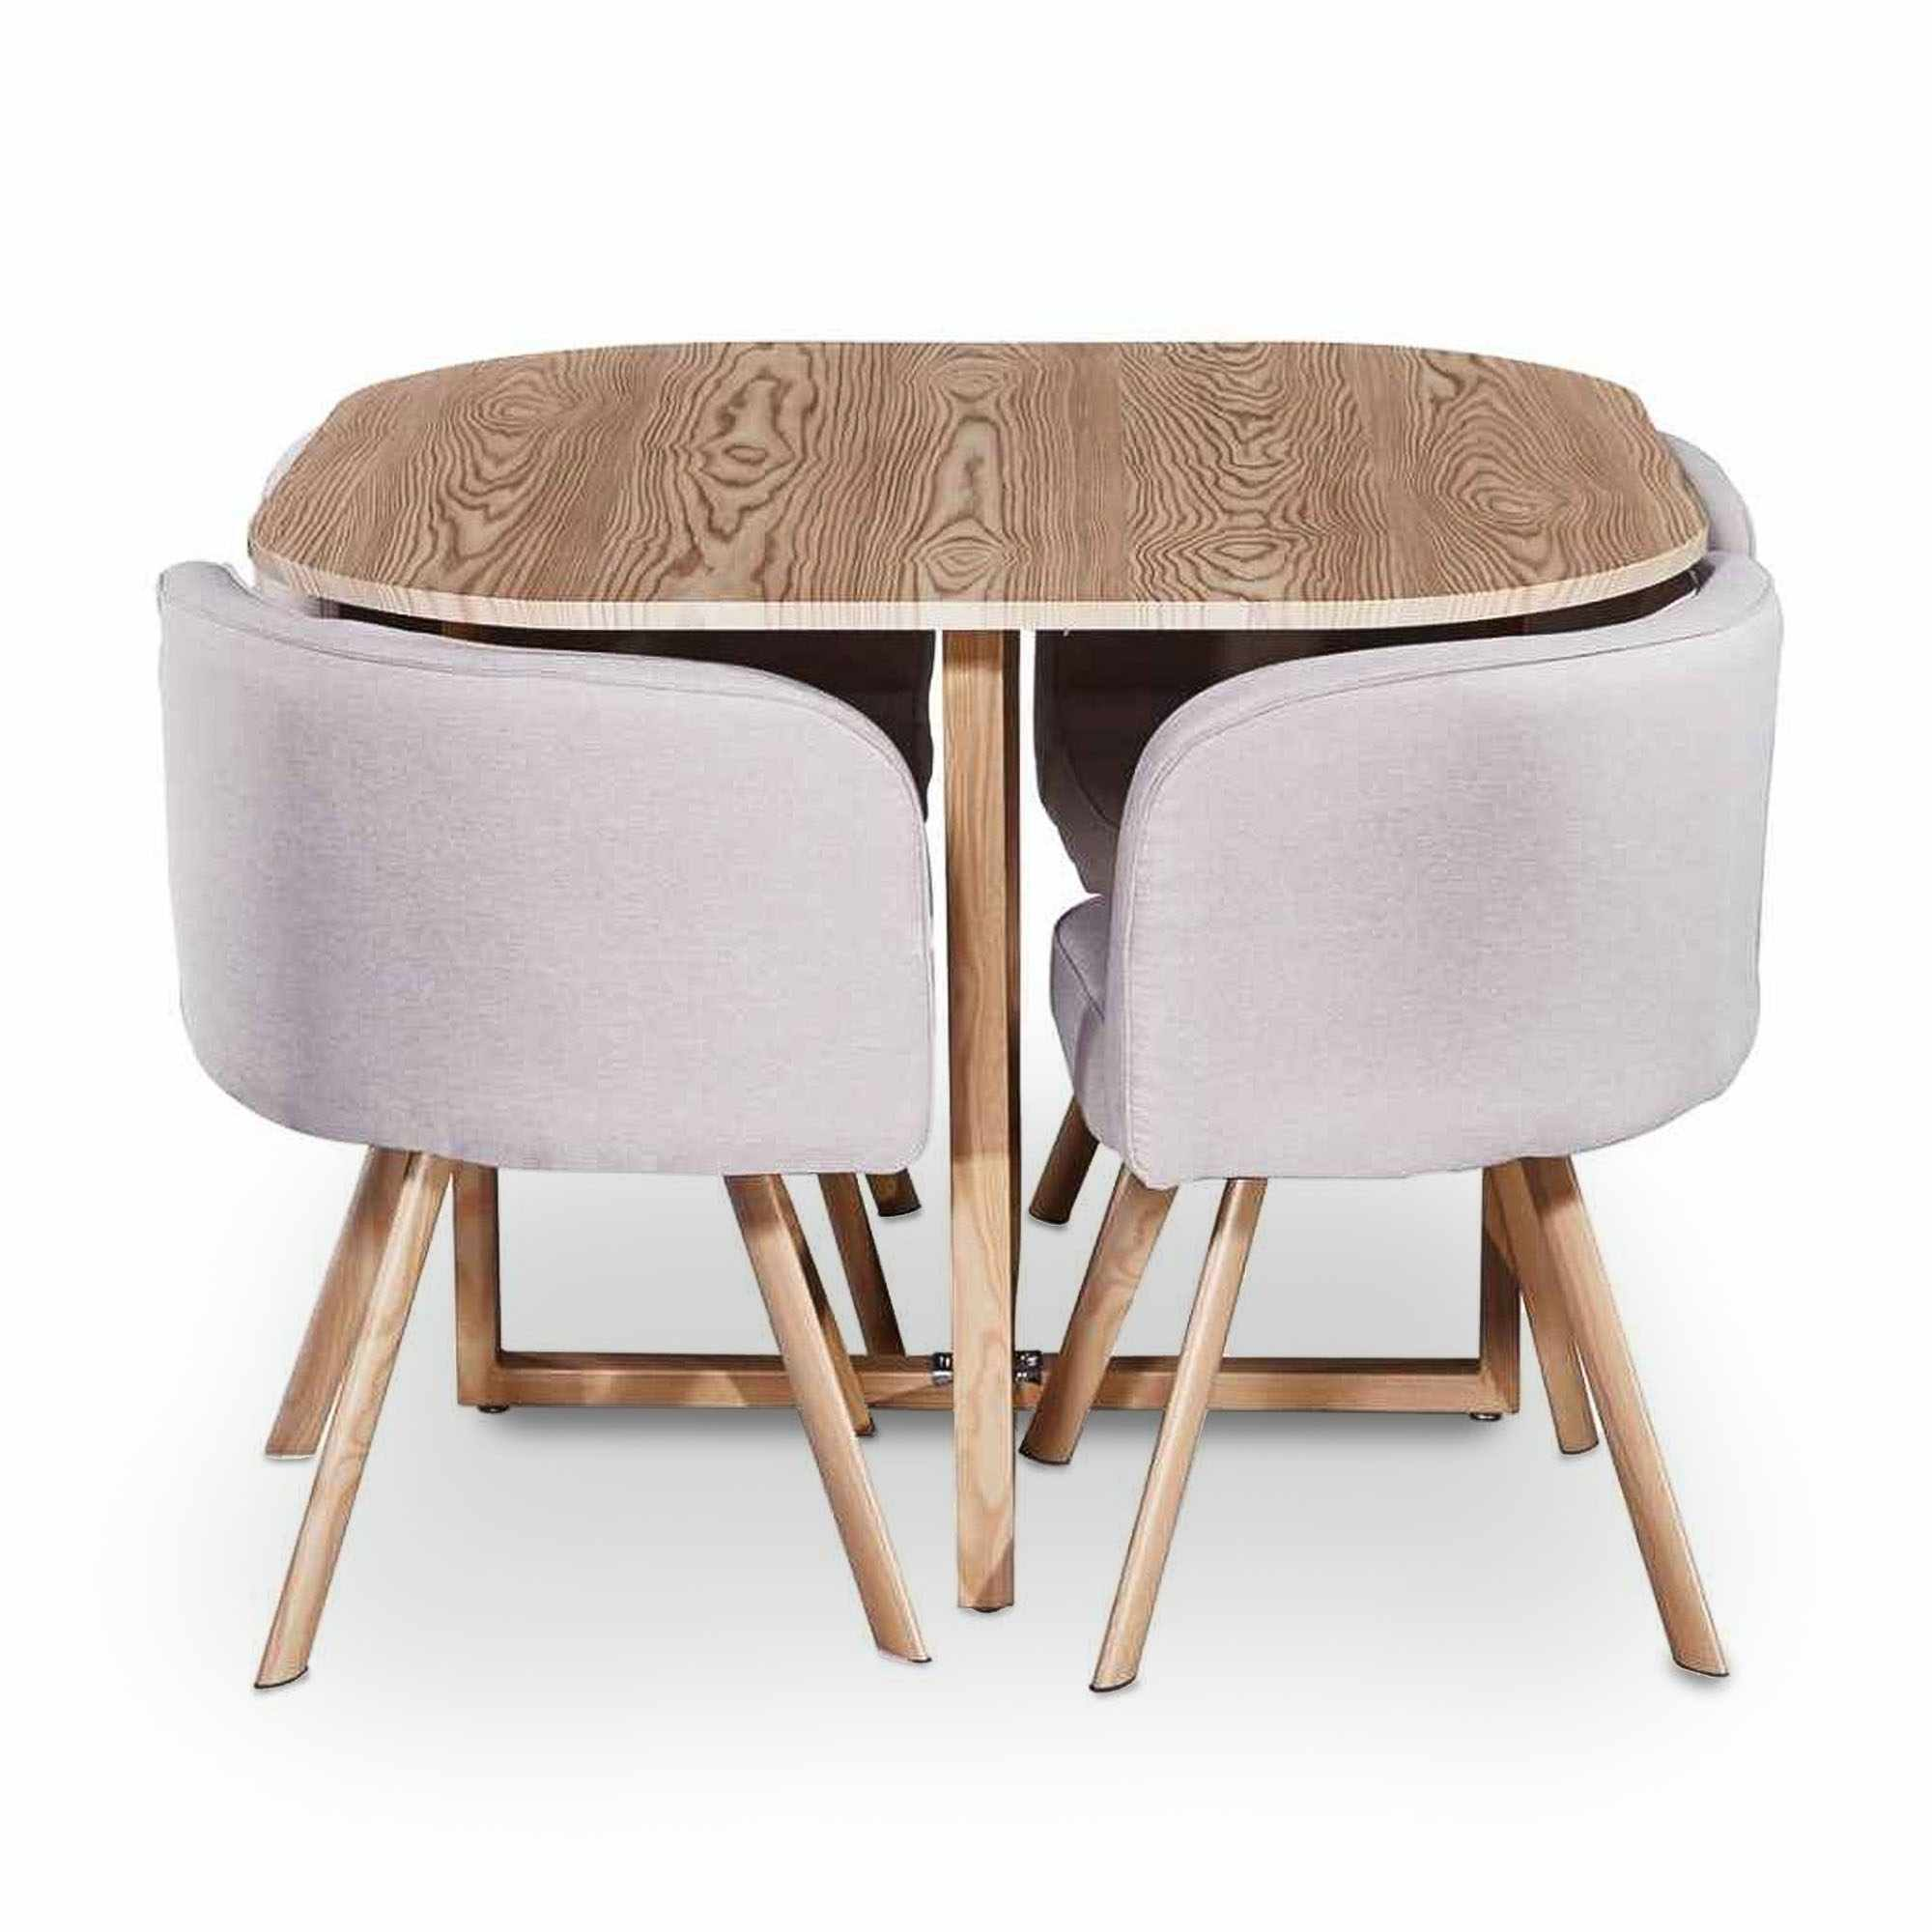 Ensemble table + 4 chaises encastrables beige FLEN